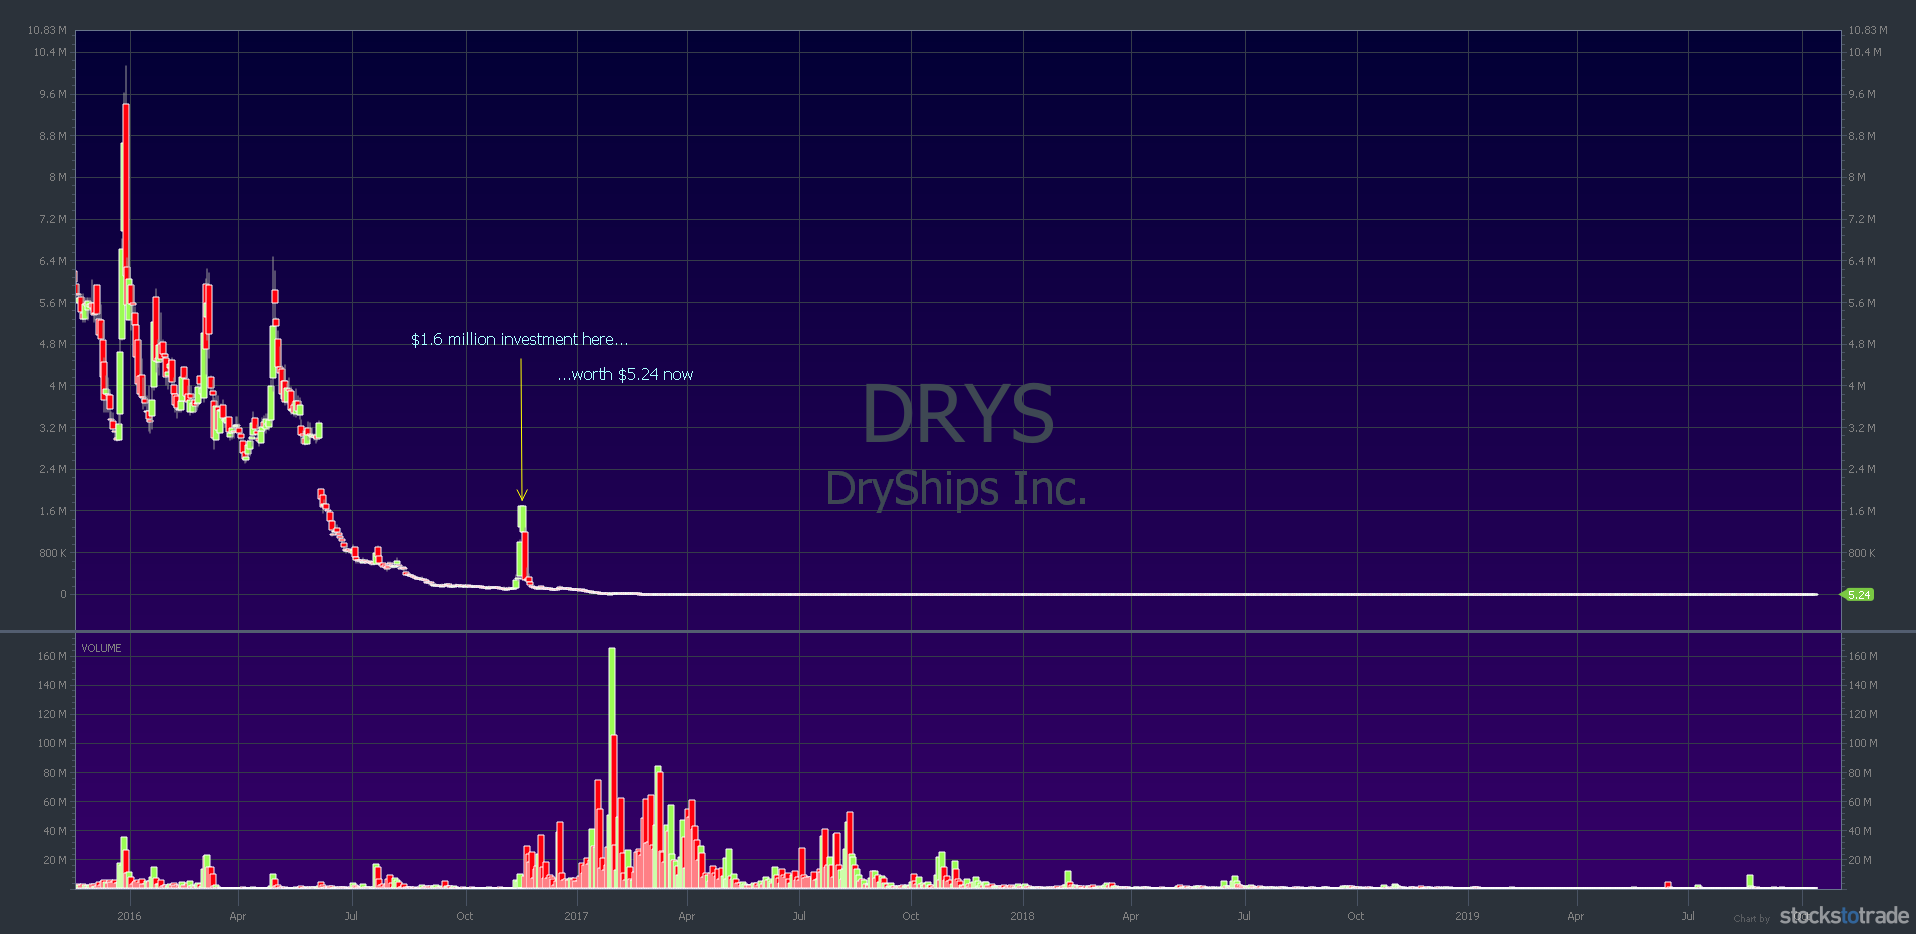 DRYS 4-year chart daily candlestick toxic financing